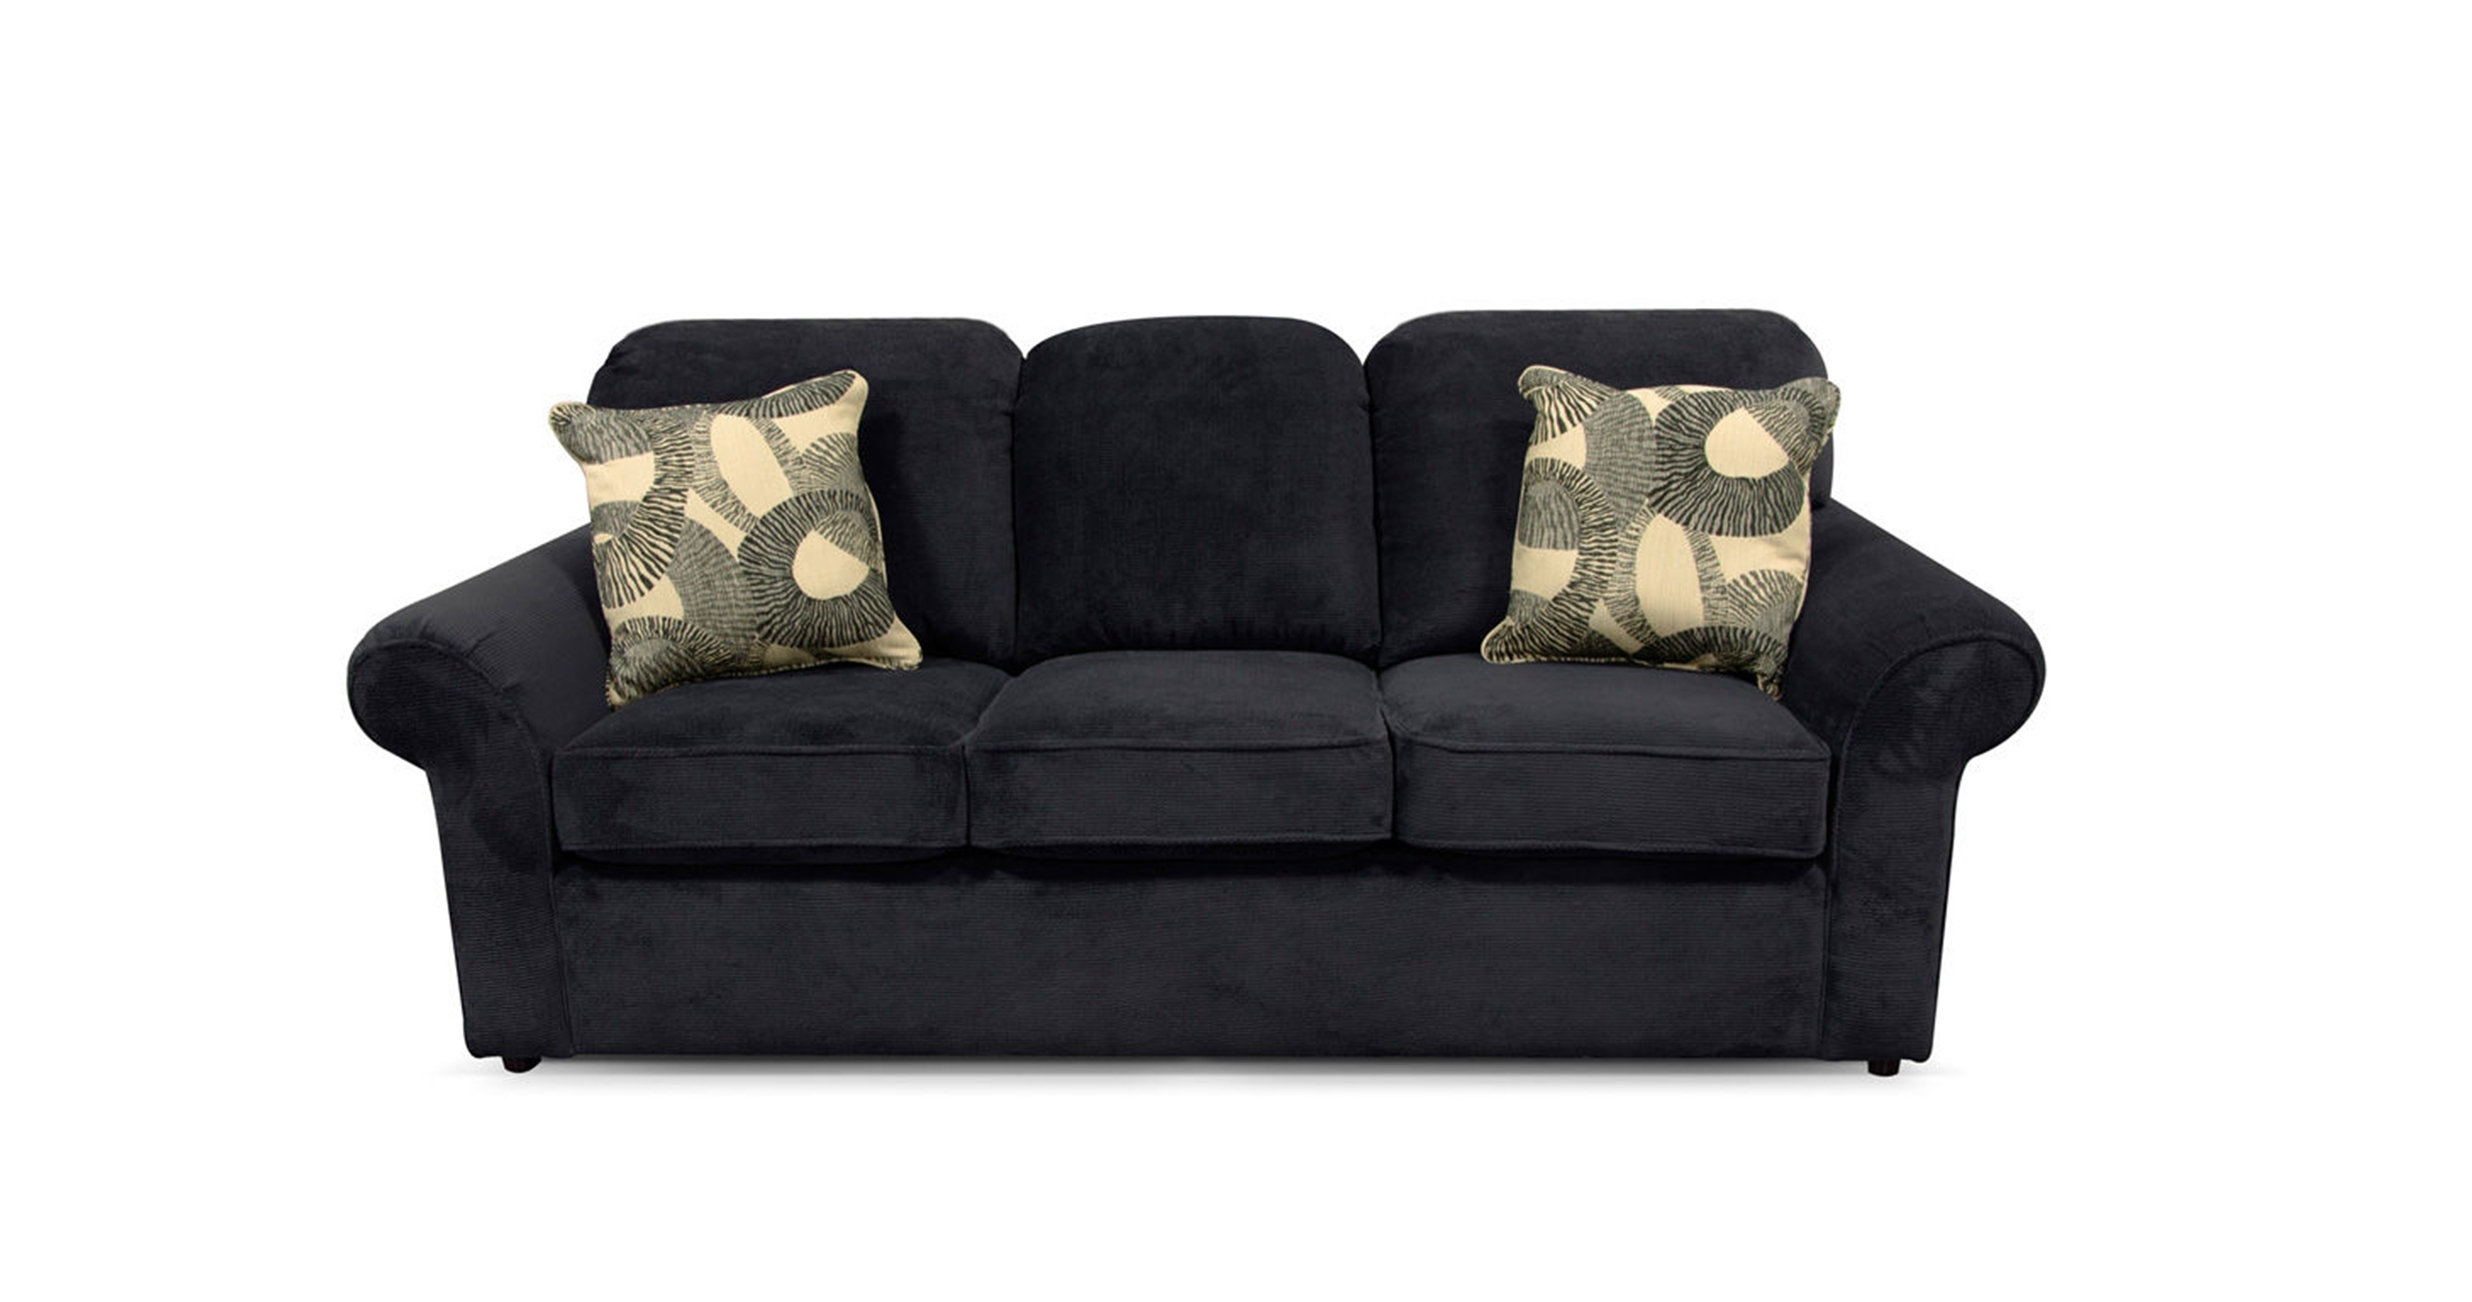 Most Popular Black Microfiber Lazy Boy Full Sleeper Sofa With 3 Cushions And Pertaining To Lazy Boy Chaises (View 11 of 15)